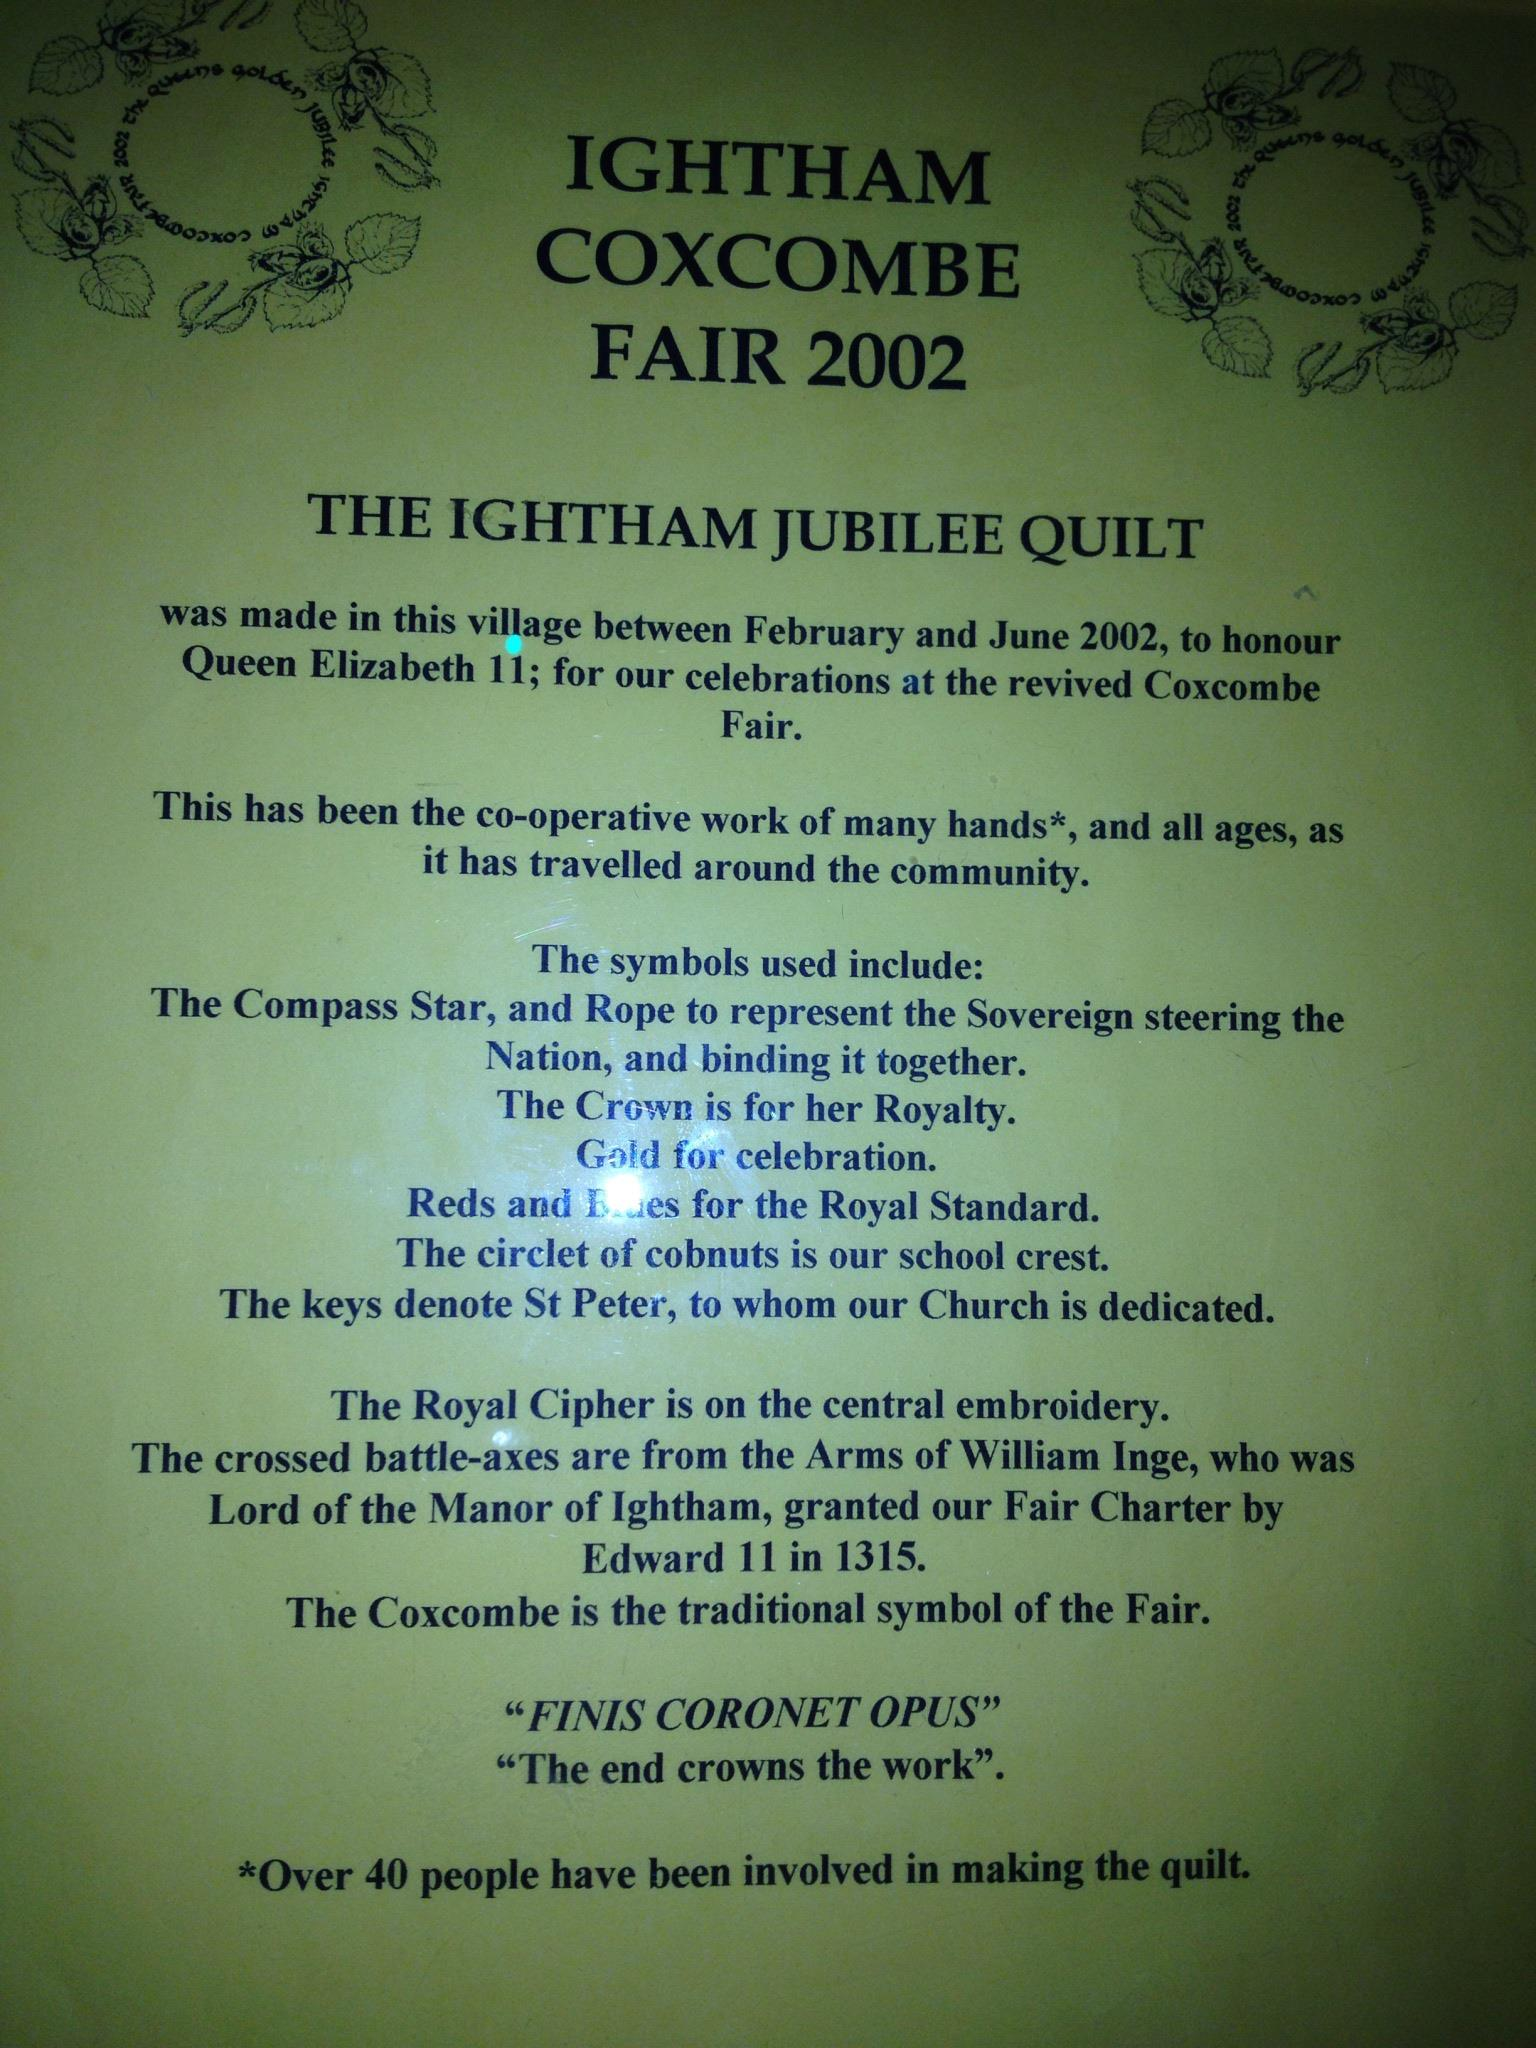 Ightham Coxcombe Fair 2002 Jubilee Quilt sign with descriptive writing - transcript available on request